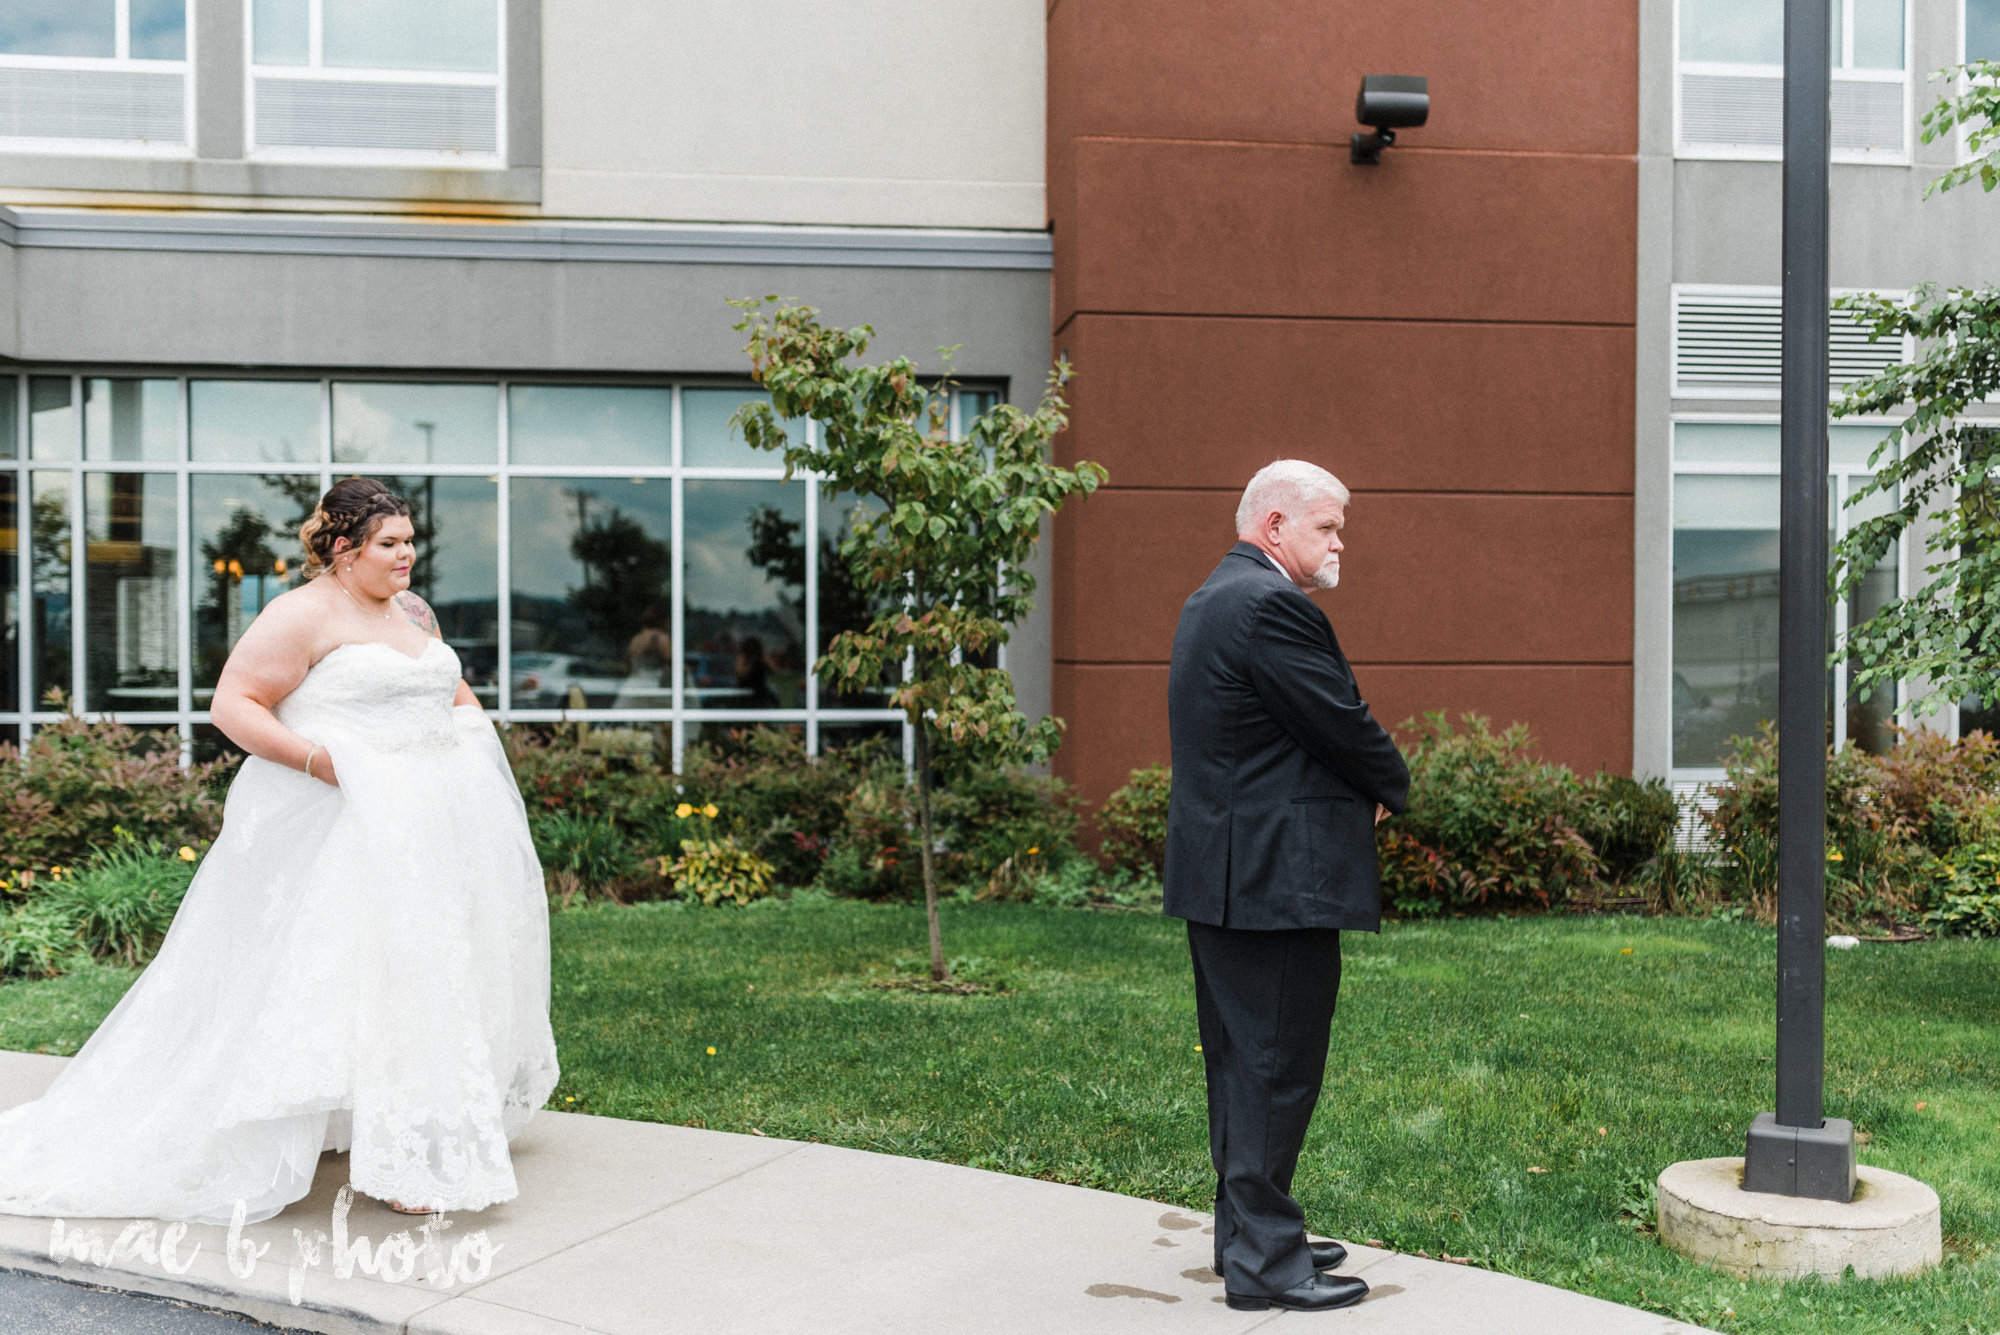 Kristina and ryan's personal vintage glam fall wedding at disalvo's station restaurant and the arnold palmer latrobe country club in latrobe, pa photographed by youngstown wedding photographer mae b photo-21.jpg